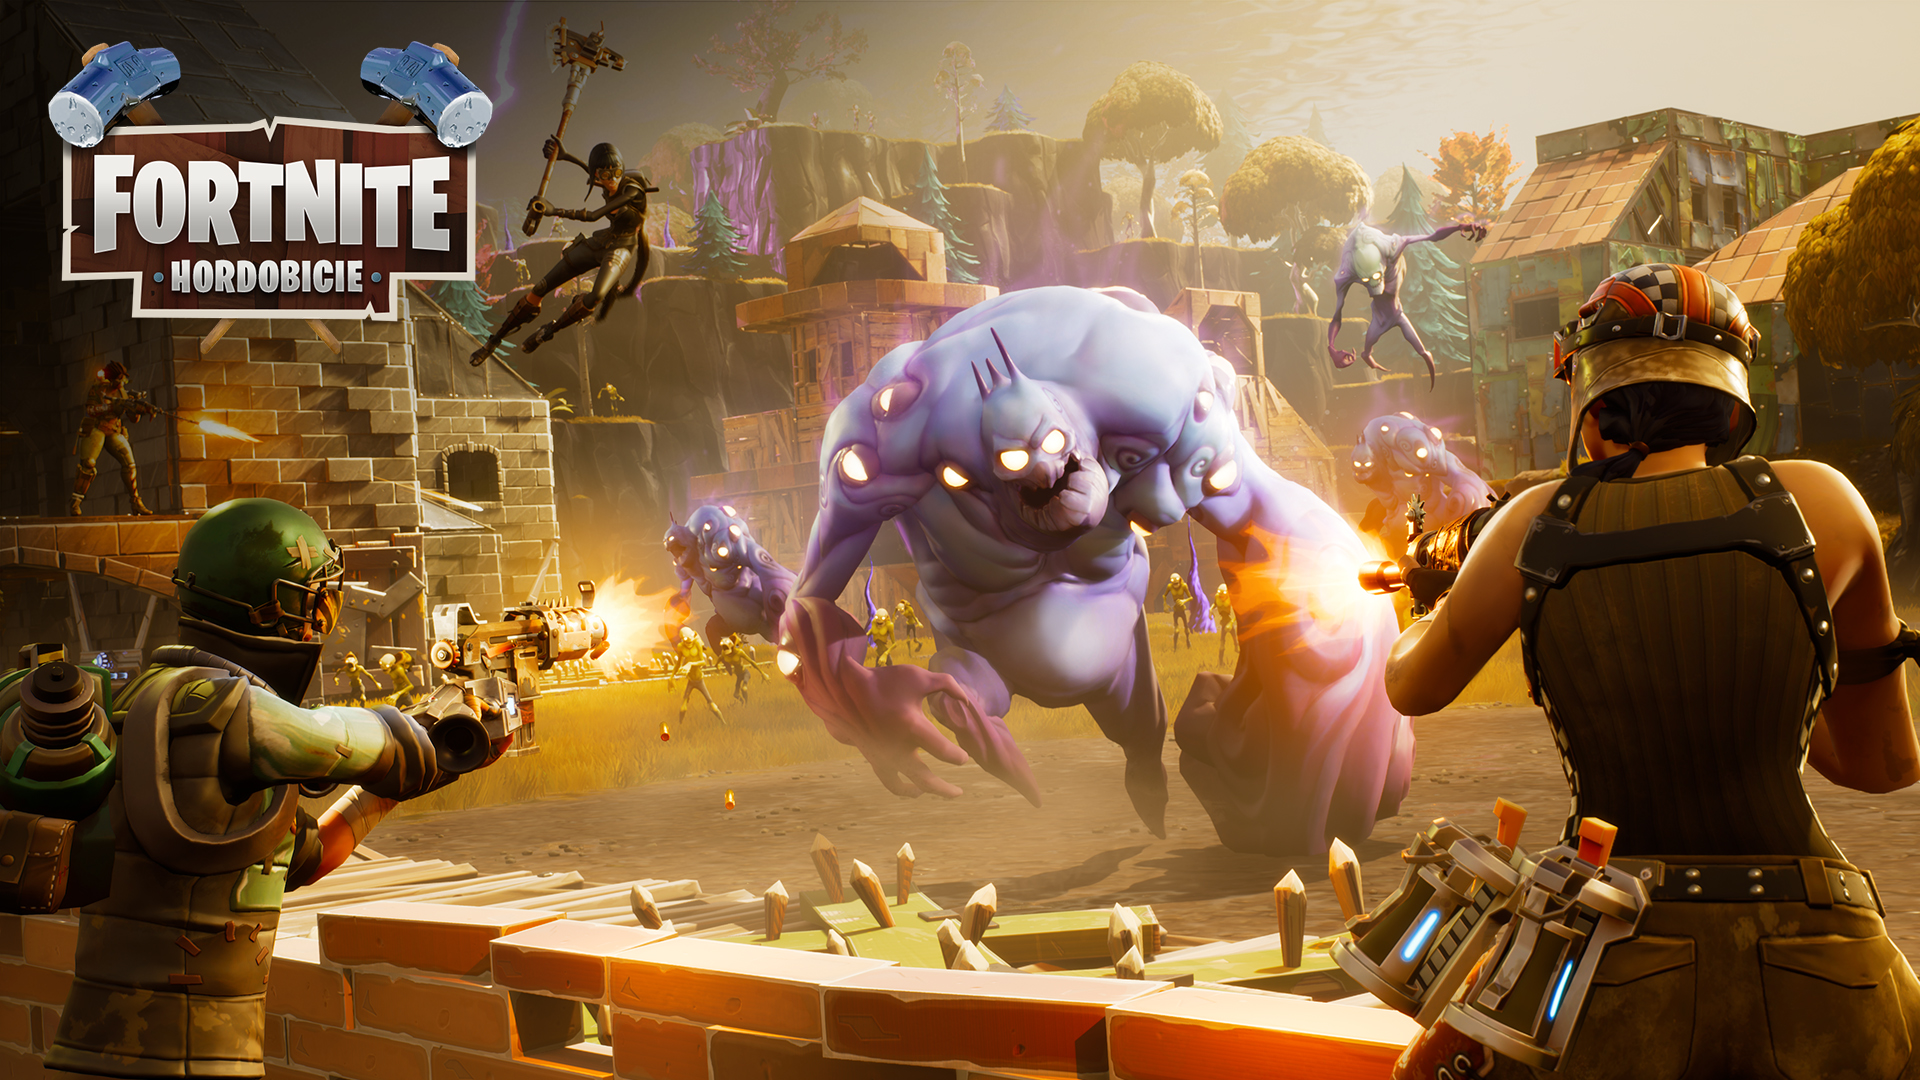 Fortnite%2Fblog%2Fea-1-7-patch-notes%2FPL-HB-GamePlay-1920x1080-acd48b11d4715f0fd7ce9bfc7a474078d78f2e33